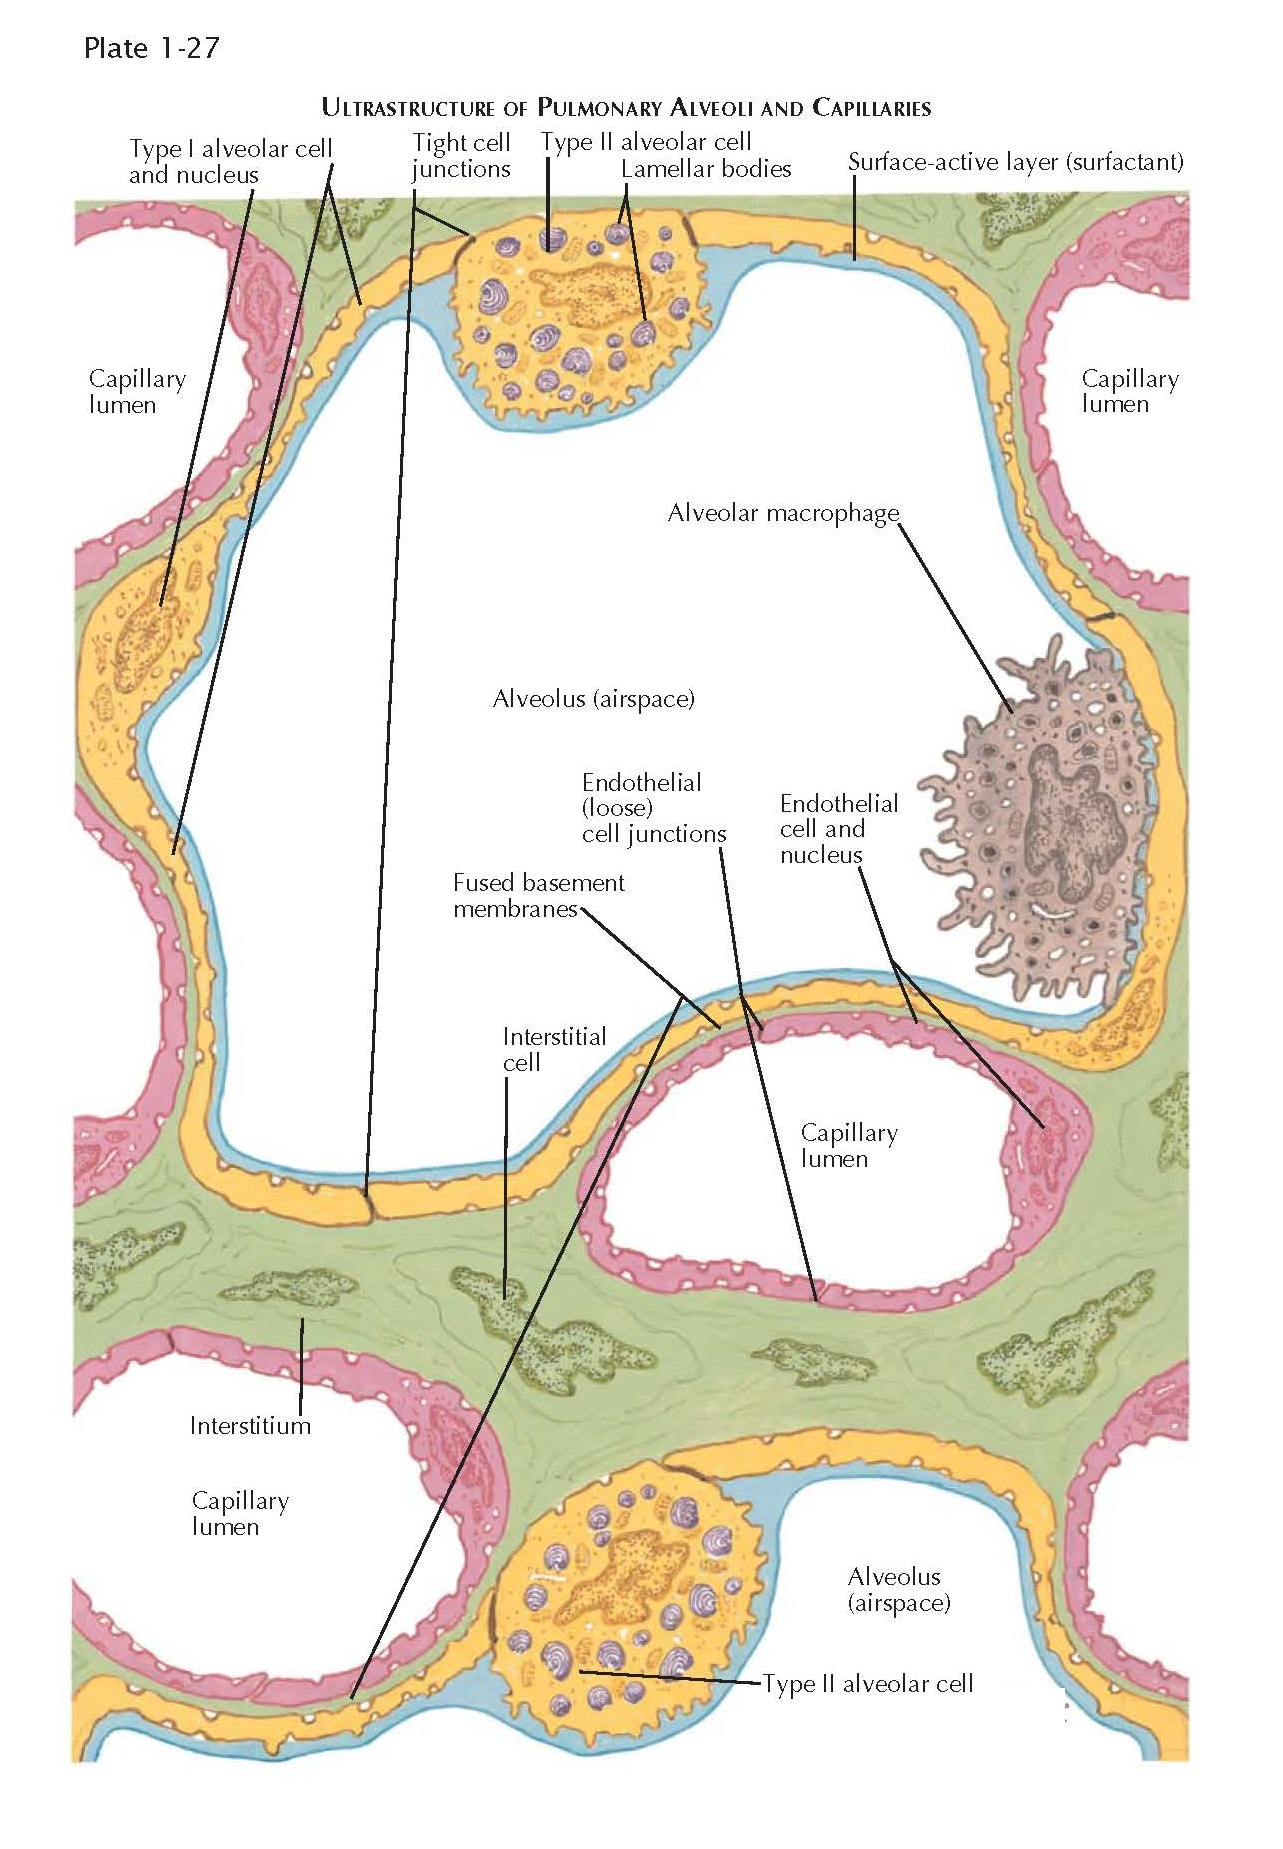 ULTRASTRUCTURE OF PULMONARY ALVEOLI AND CAPILLARIES